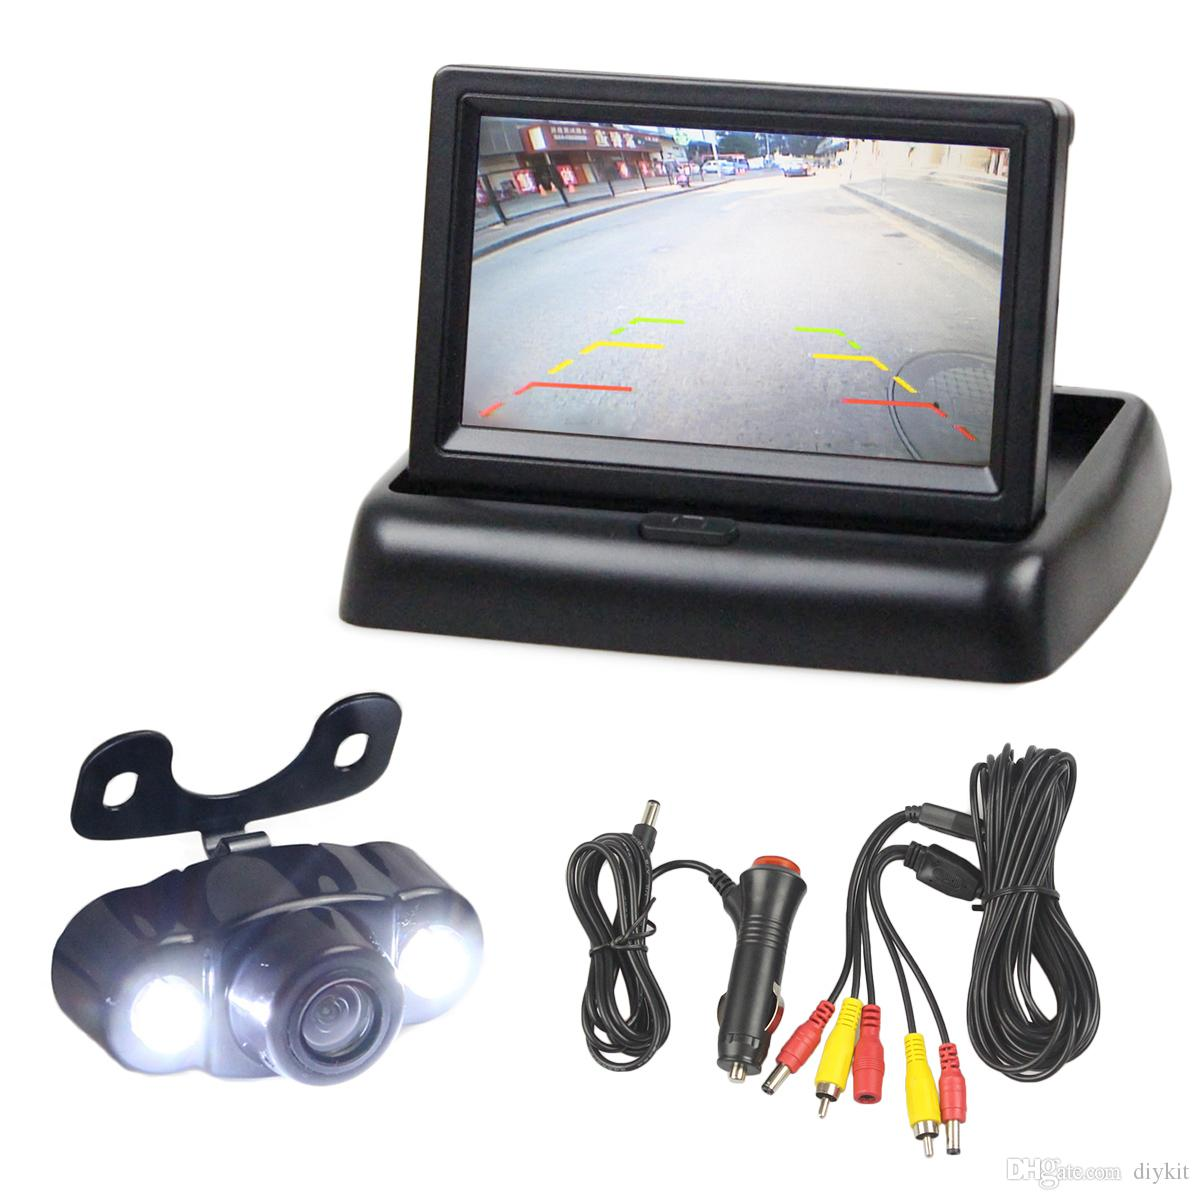 Diykit 4,3 polegada carro invertendo kit de câmera de volta para cima monitor de carro display LCD HD LED Night Vision View View Camera